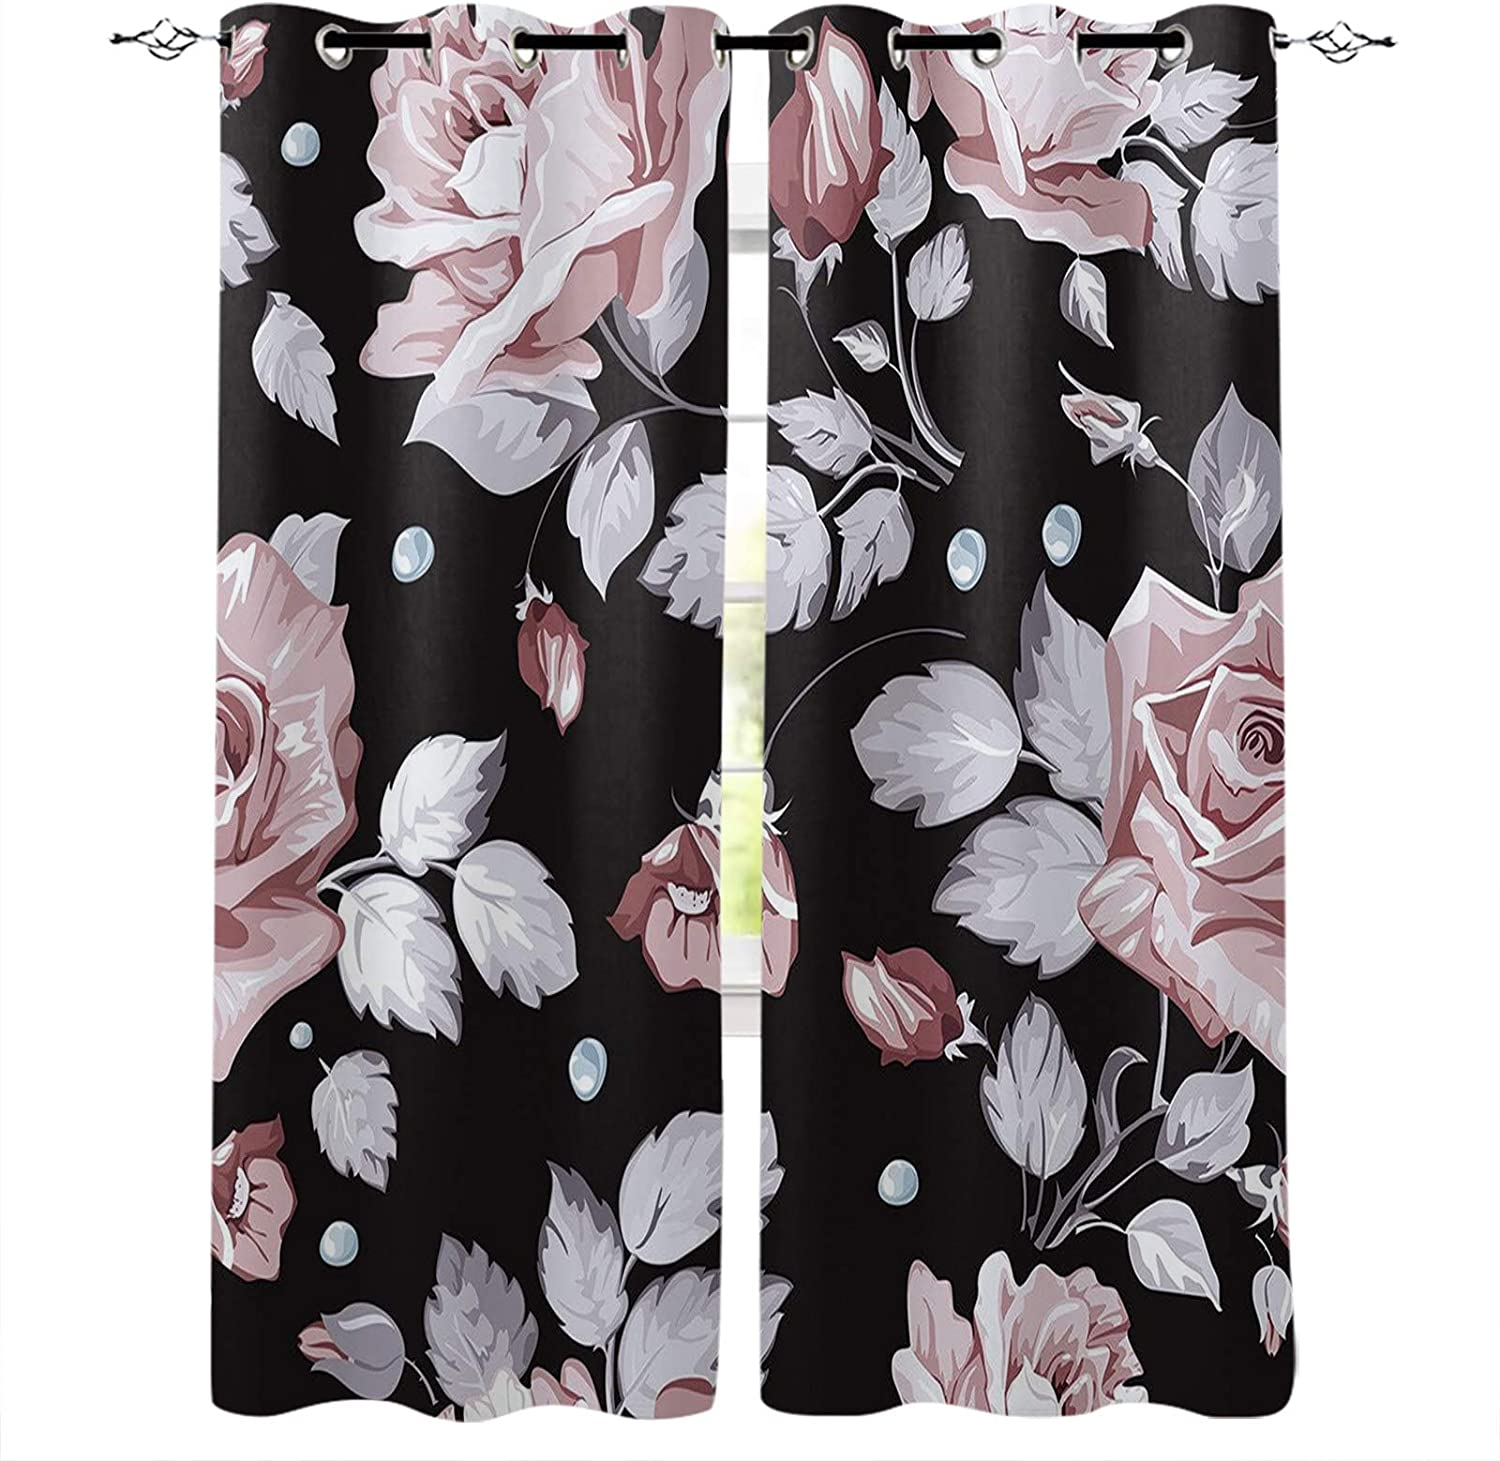 FortuneHouse8 Blackout Washington Mall Curtains Rose Black Clearance SALE! Limited time! Floral Flower Pattern